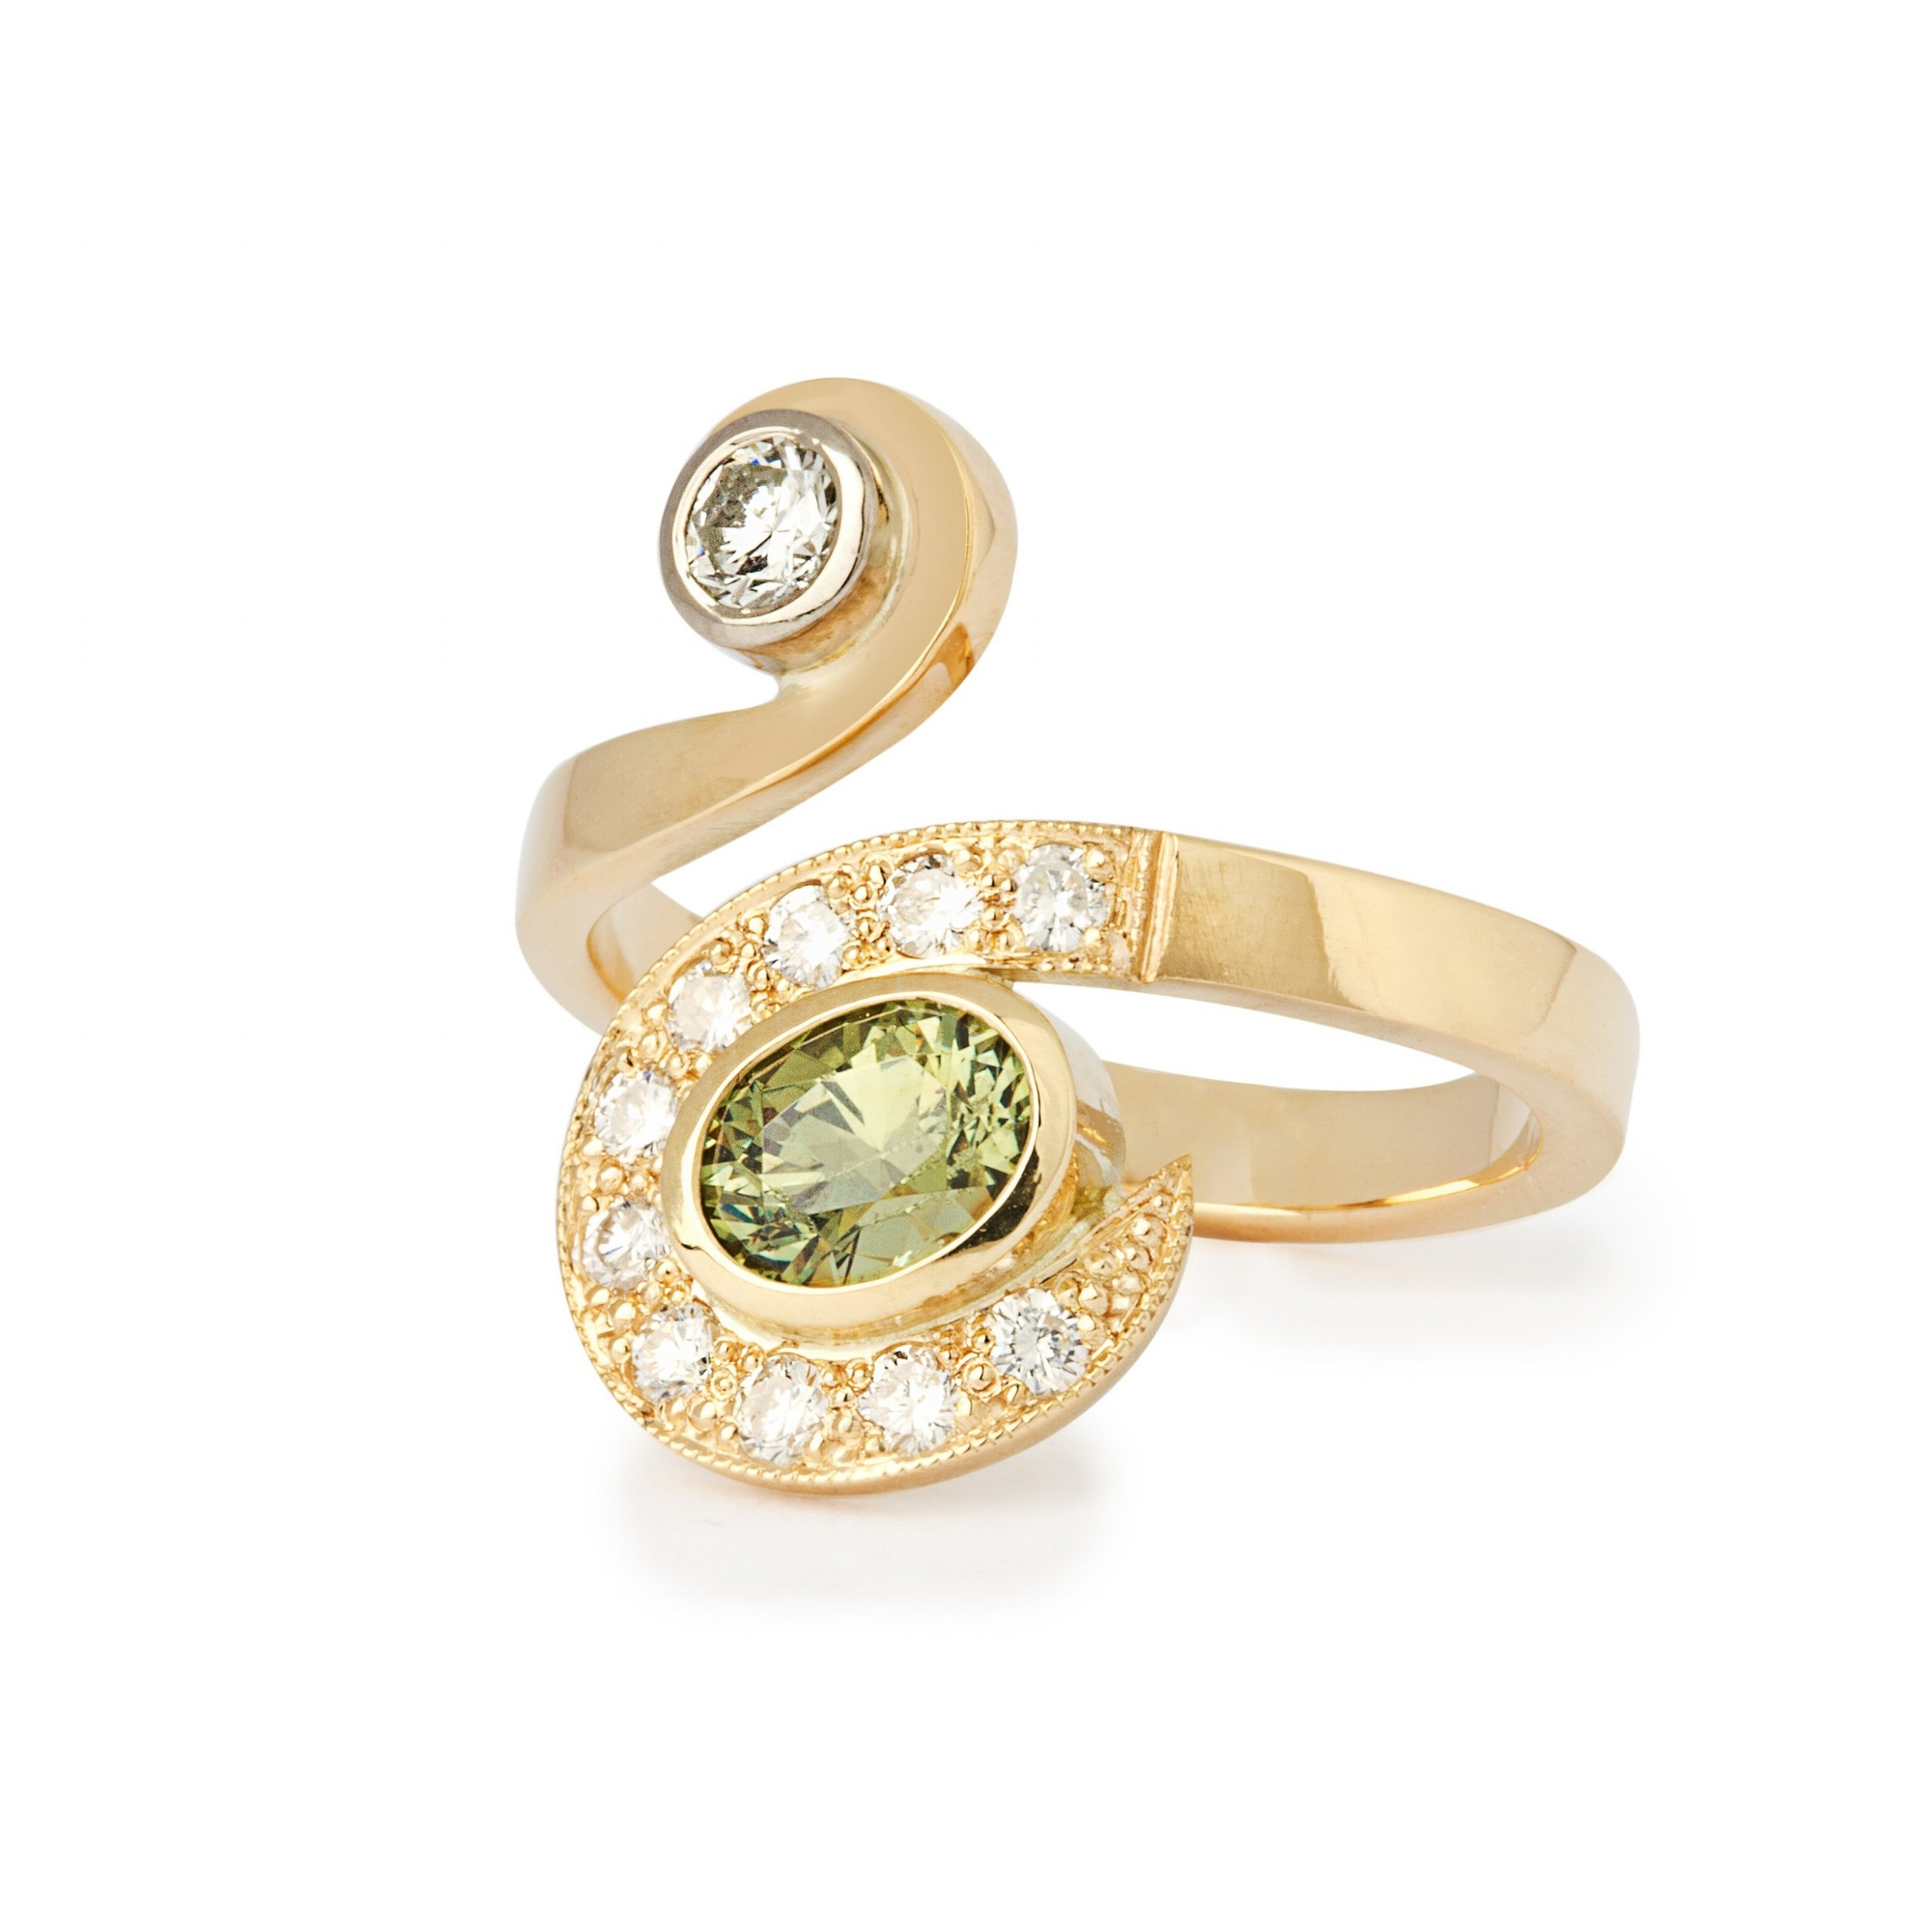 Demantoid and diamond in 18ct yellow gold ring this is stunning simple and effective